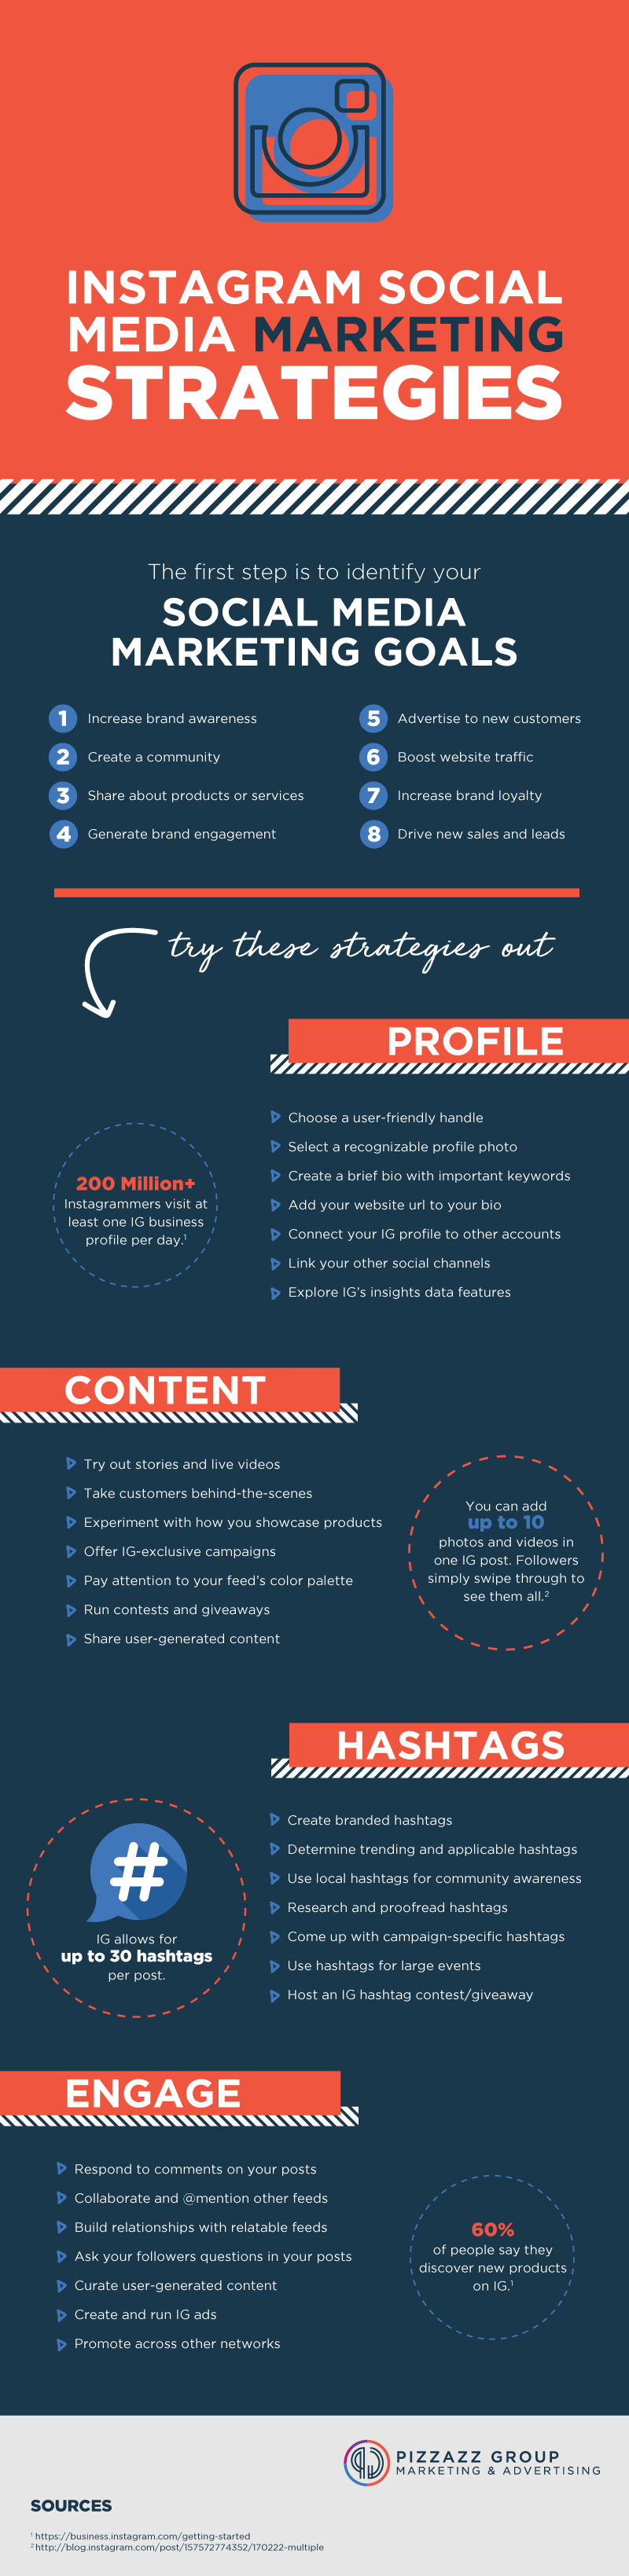 instagram-marketing-strategies-infographic.png